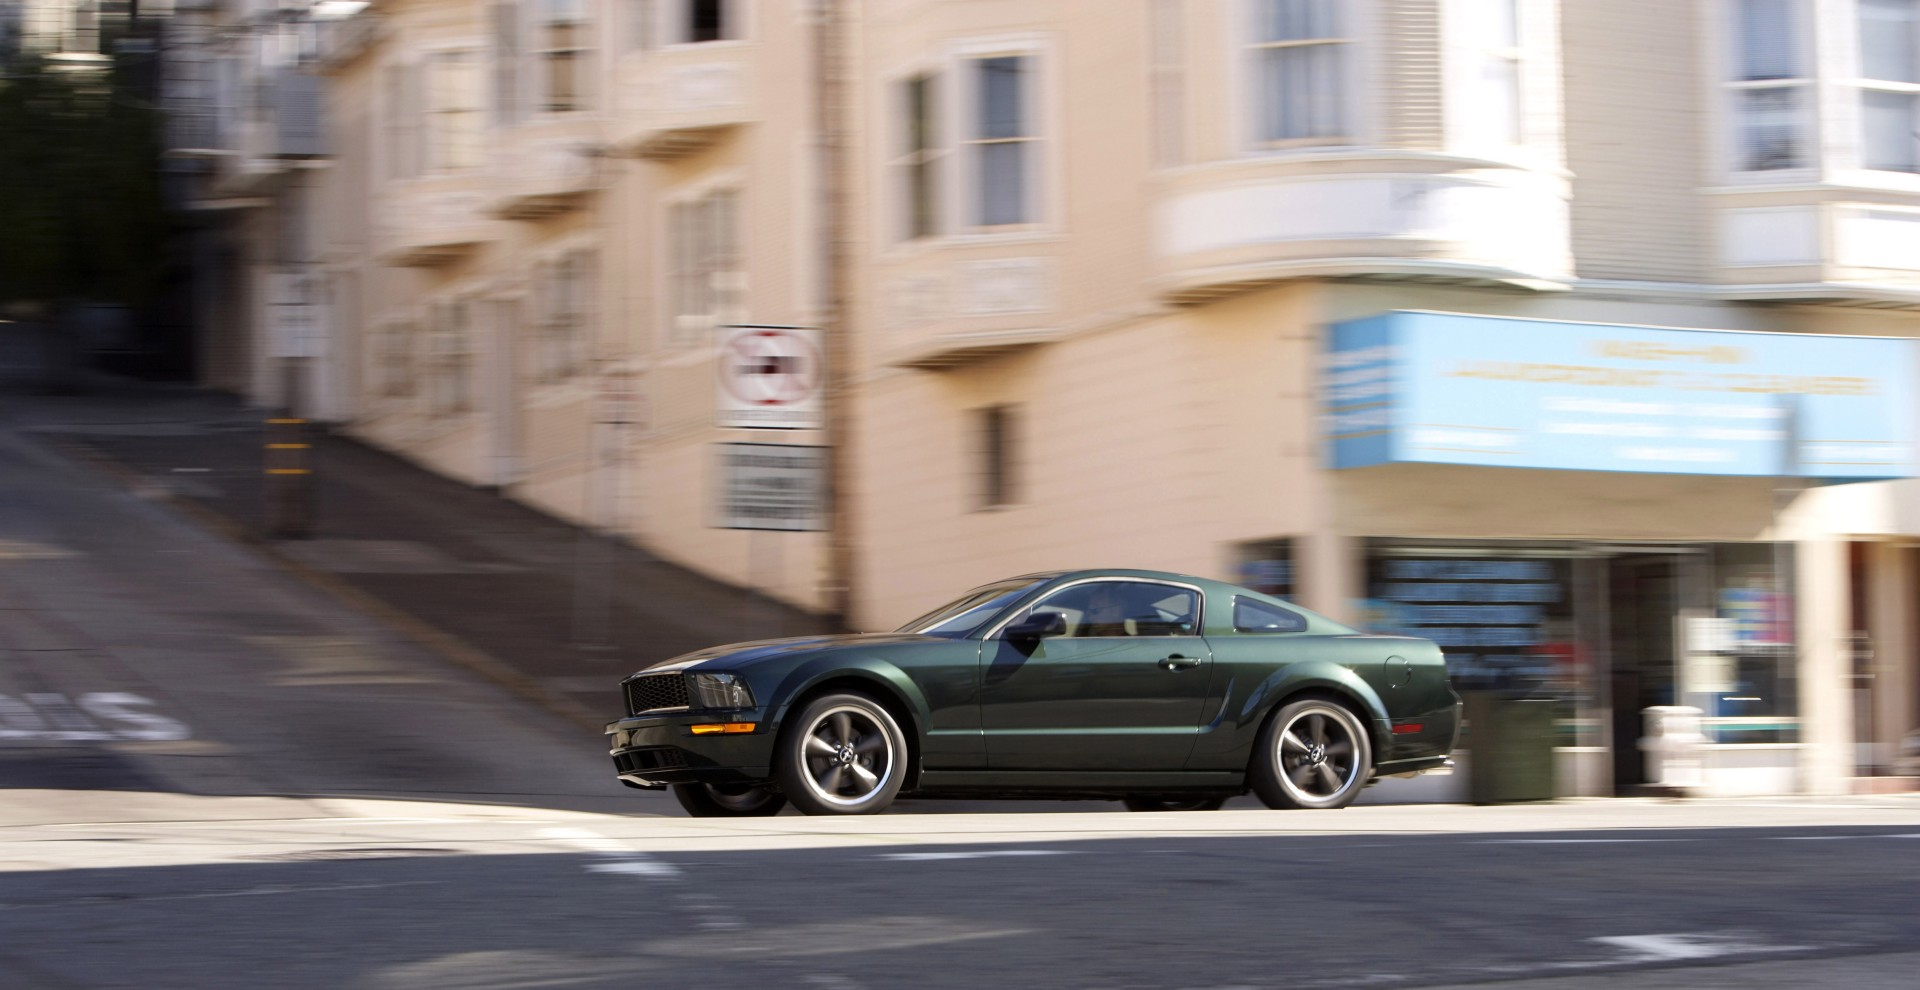 https://www.conceptcarz.com/images/Ford/ford-mustang-bullit-manu-08_01.jpg